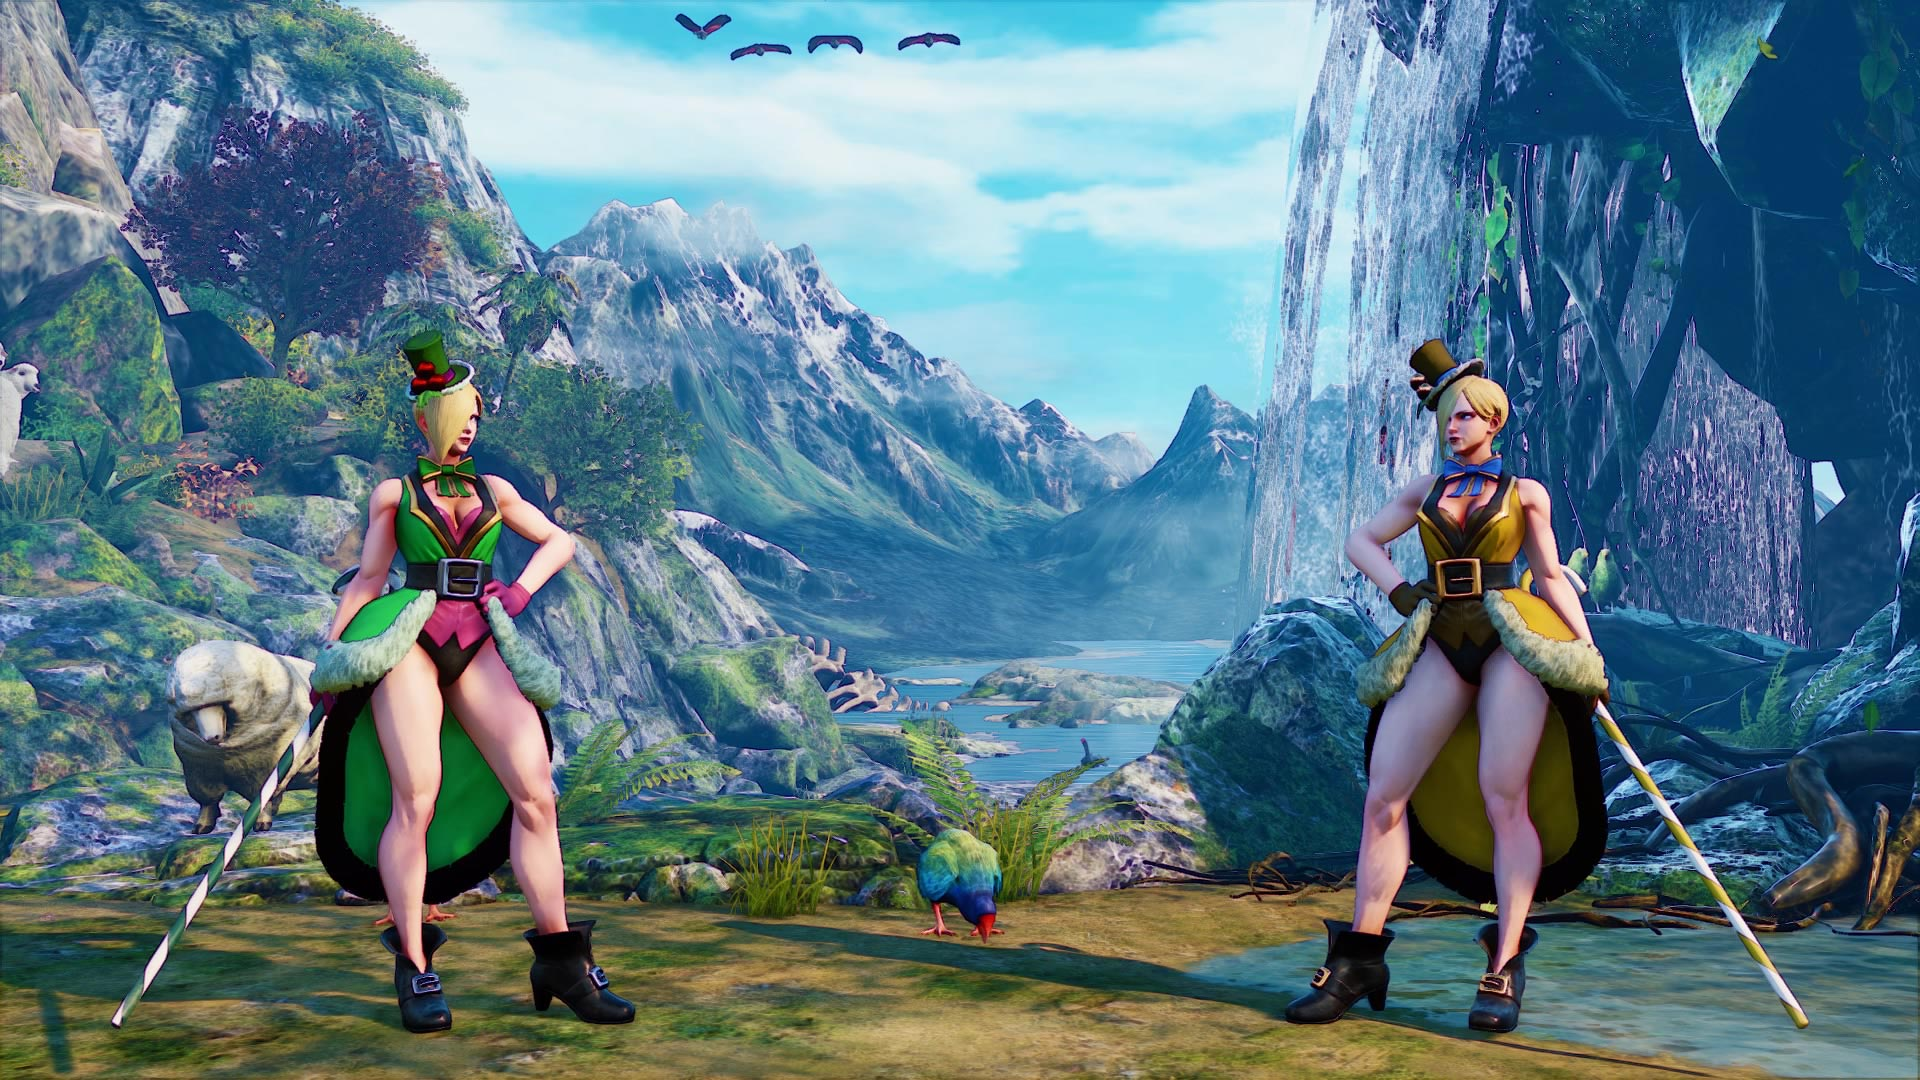 Street Fighter 5's new holiday costume colors image #7